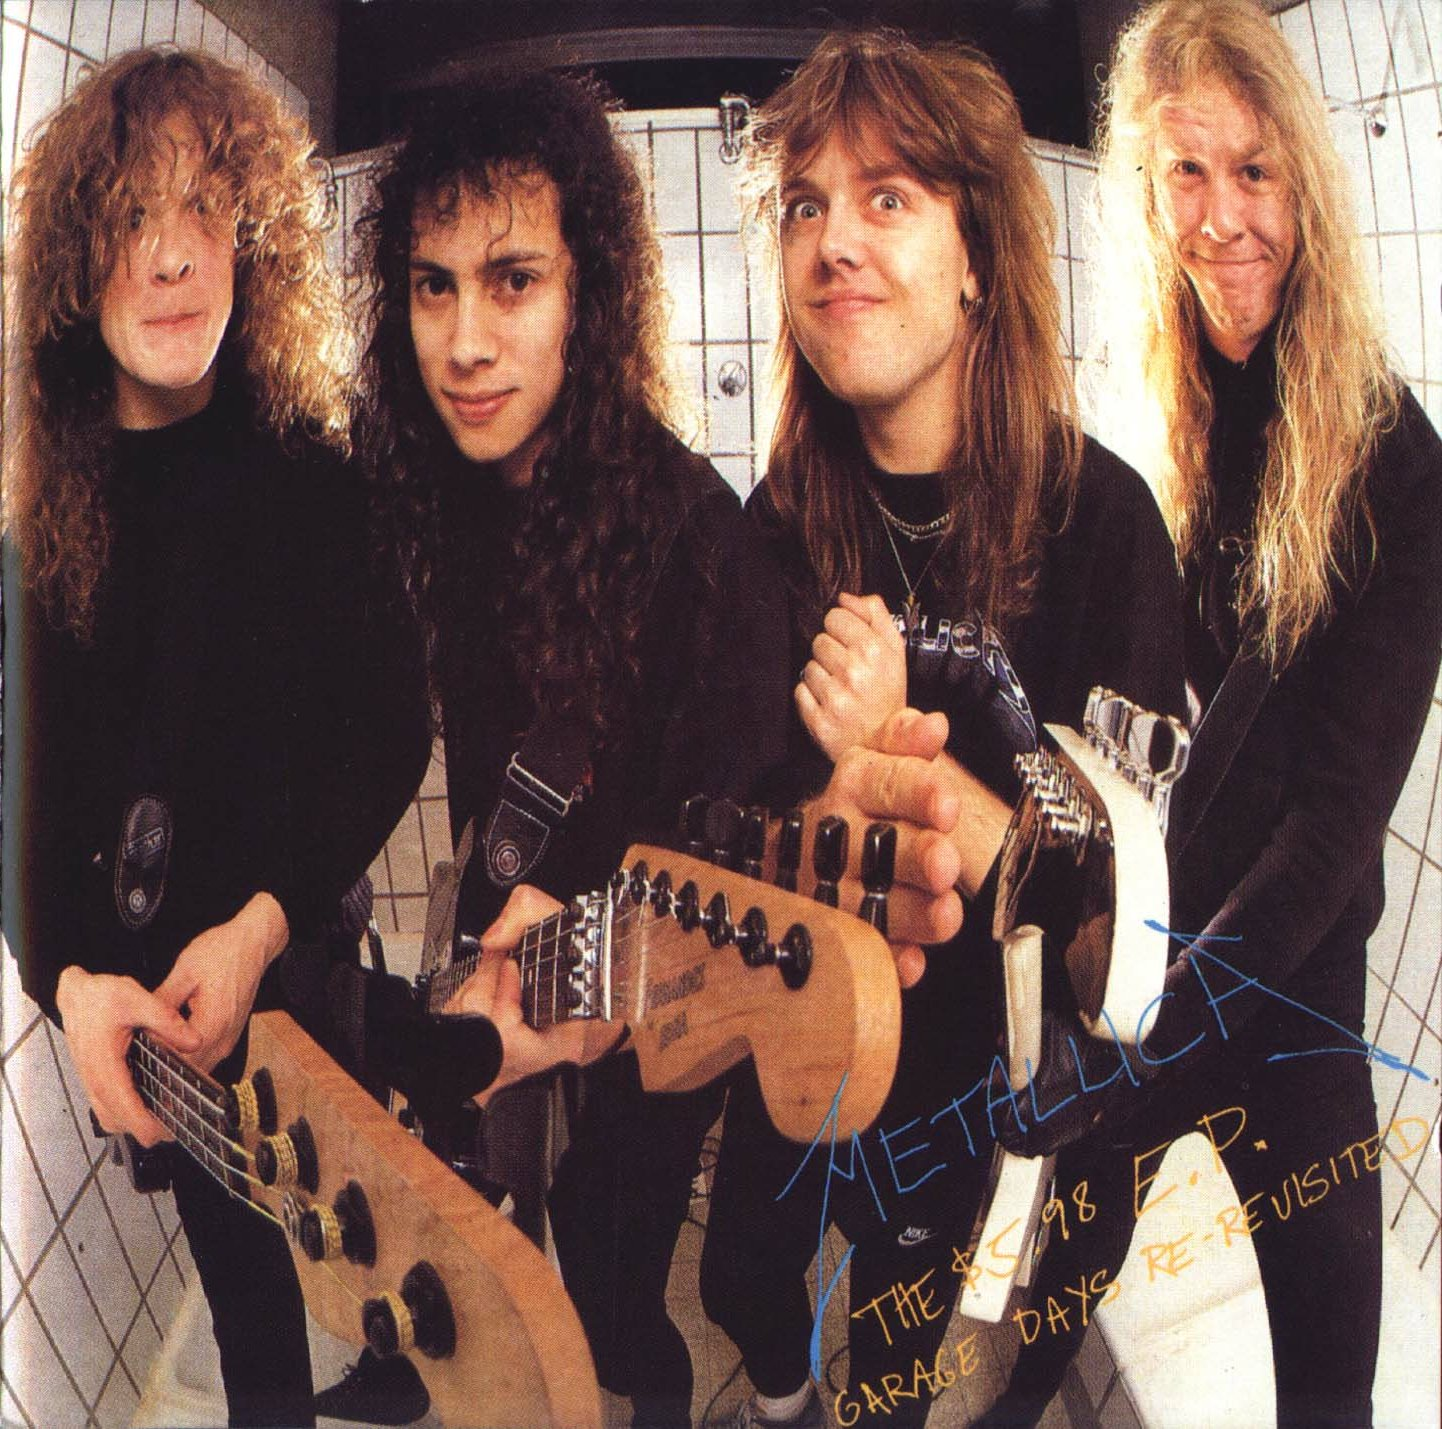 http://2.bp.blogspot.com/_f2iAGRf_Ioo/TMGoYjyA6LI/AAAAAAAACHM/2-3KPzQw0wo/s1600/Metallica+-+1987+-+The+%249.98+Cd+Garage+Days+Re-Revisited+-+Front.jpg